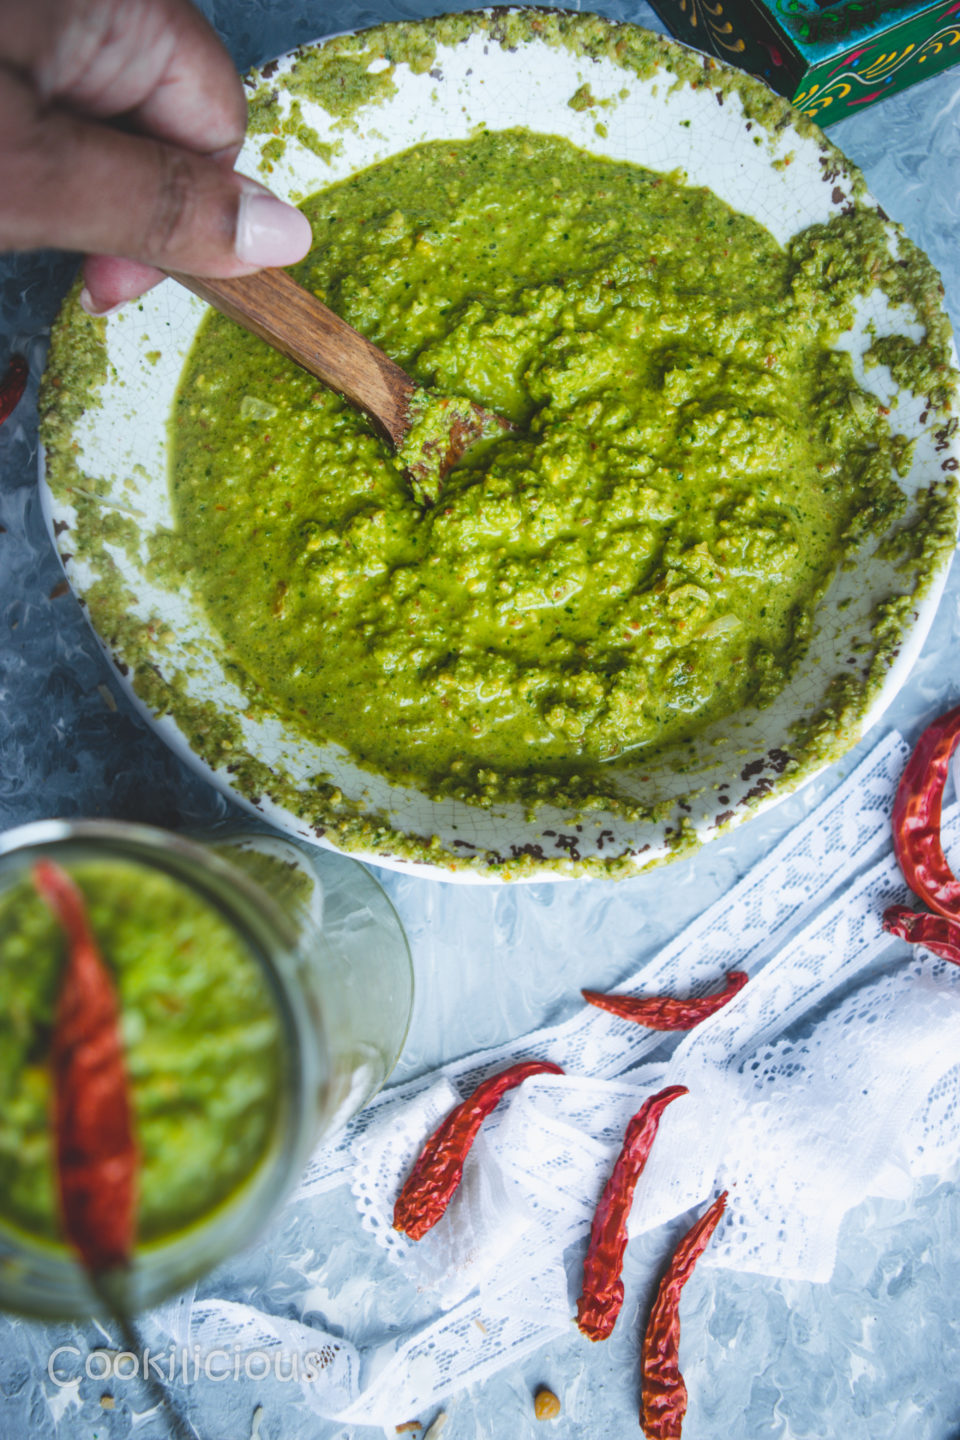 a hand dipping a wooden spoon into a bowl of Indian Green Chutney with Leftover Lettuce Leaves